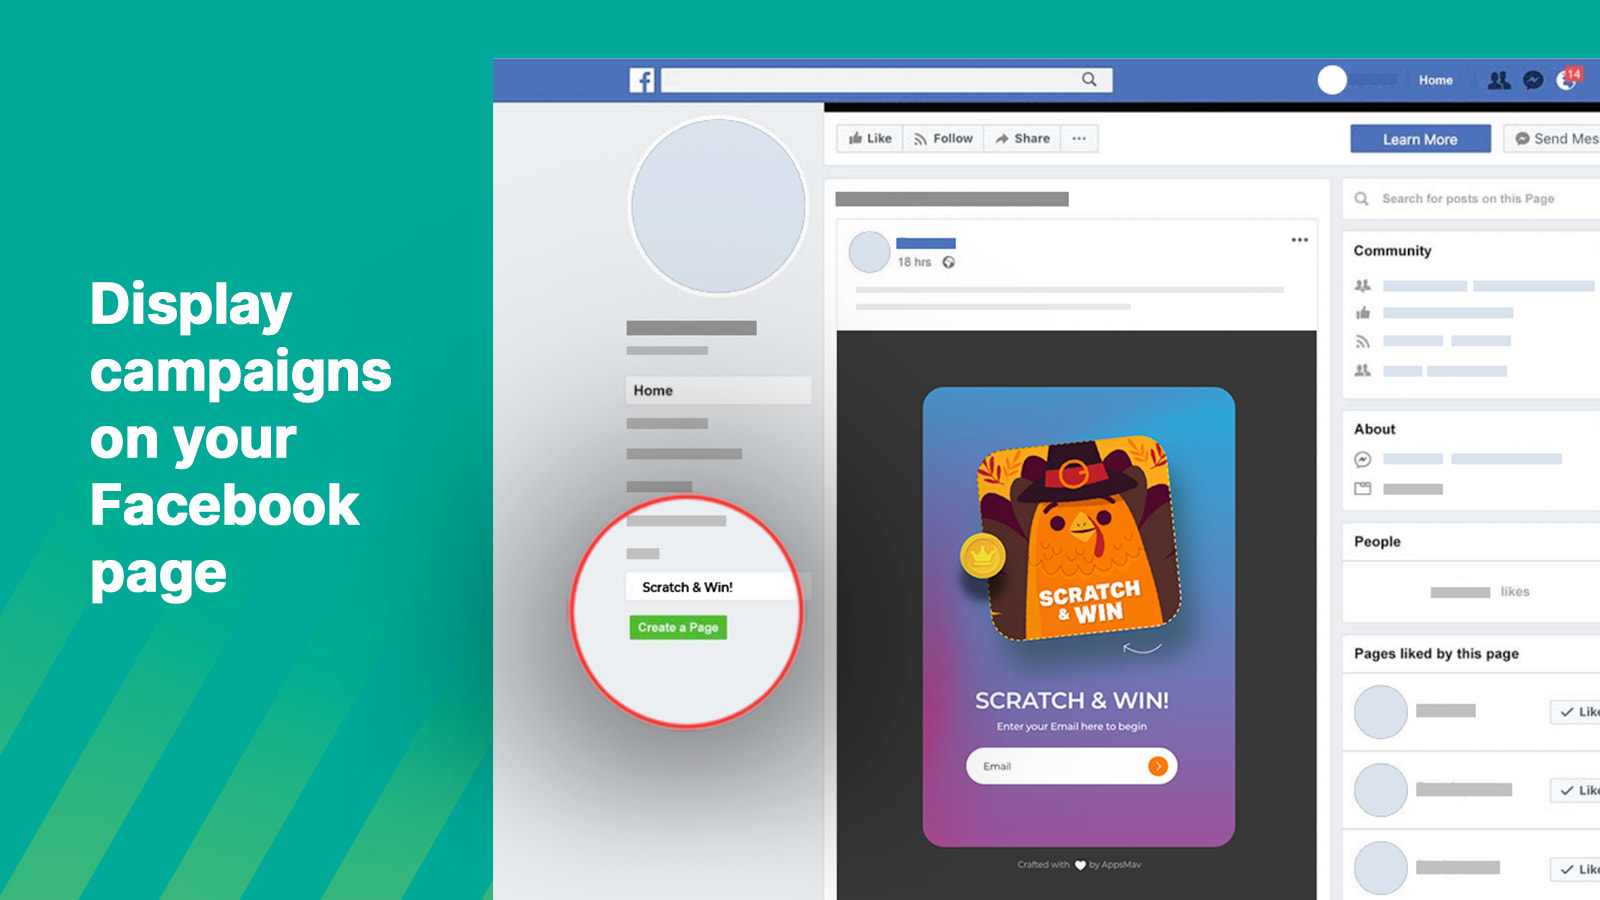 Display campaigns on your Facebook page